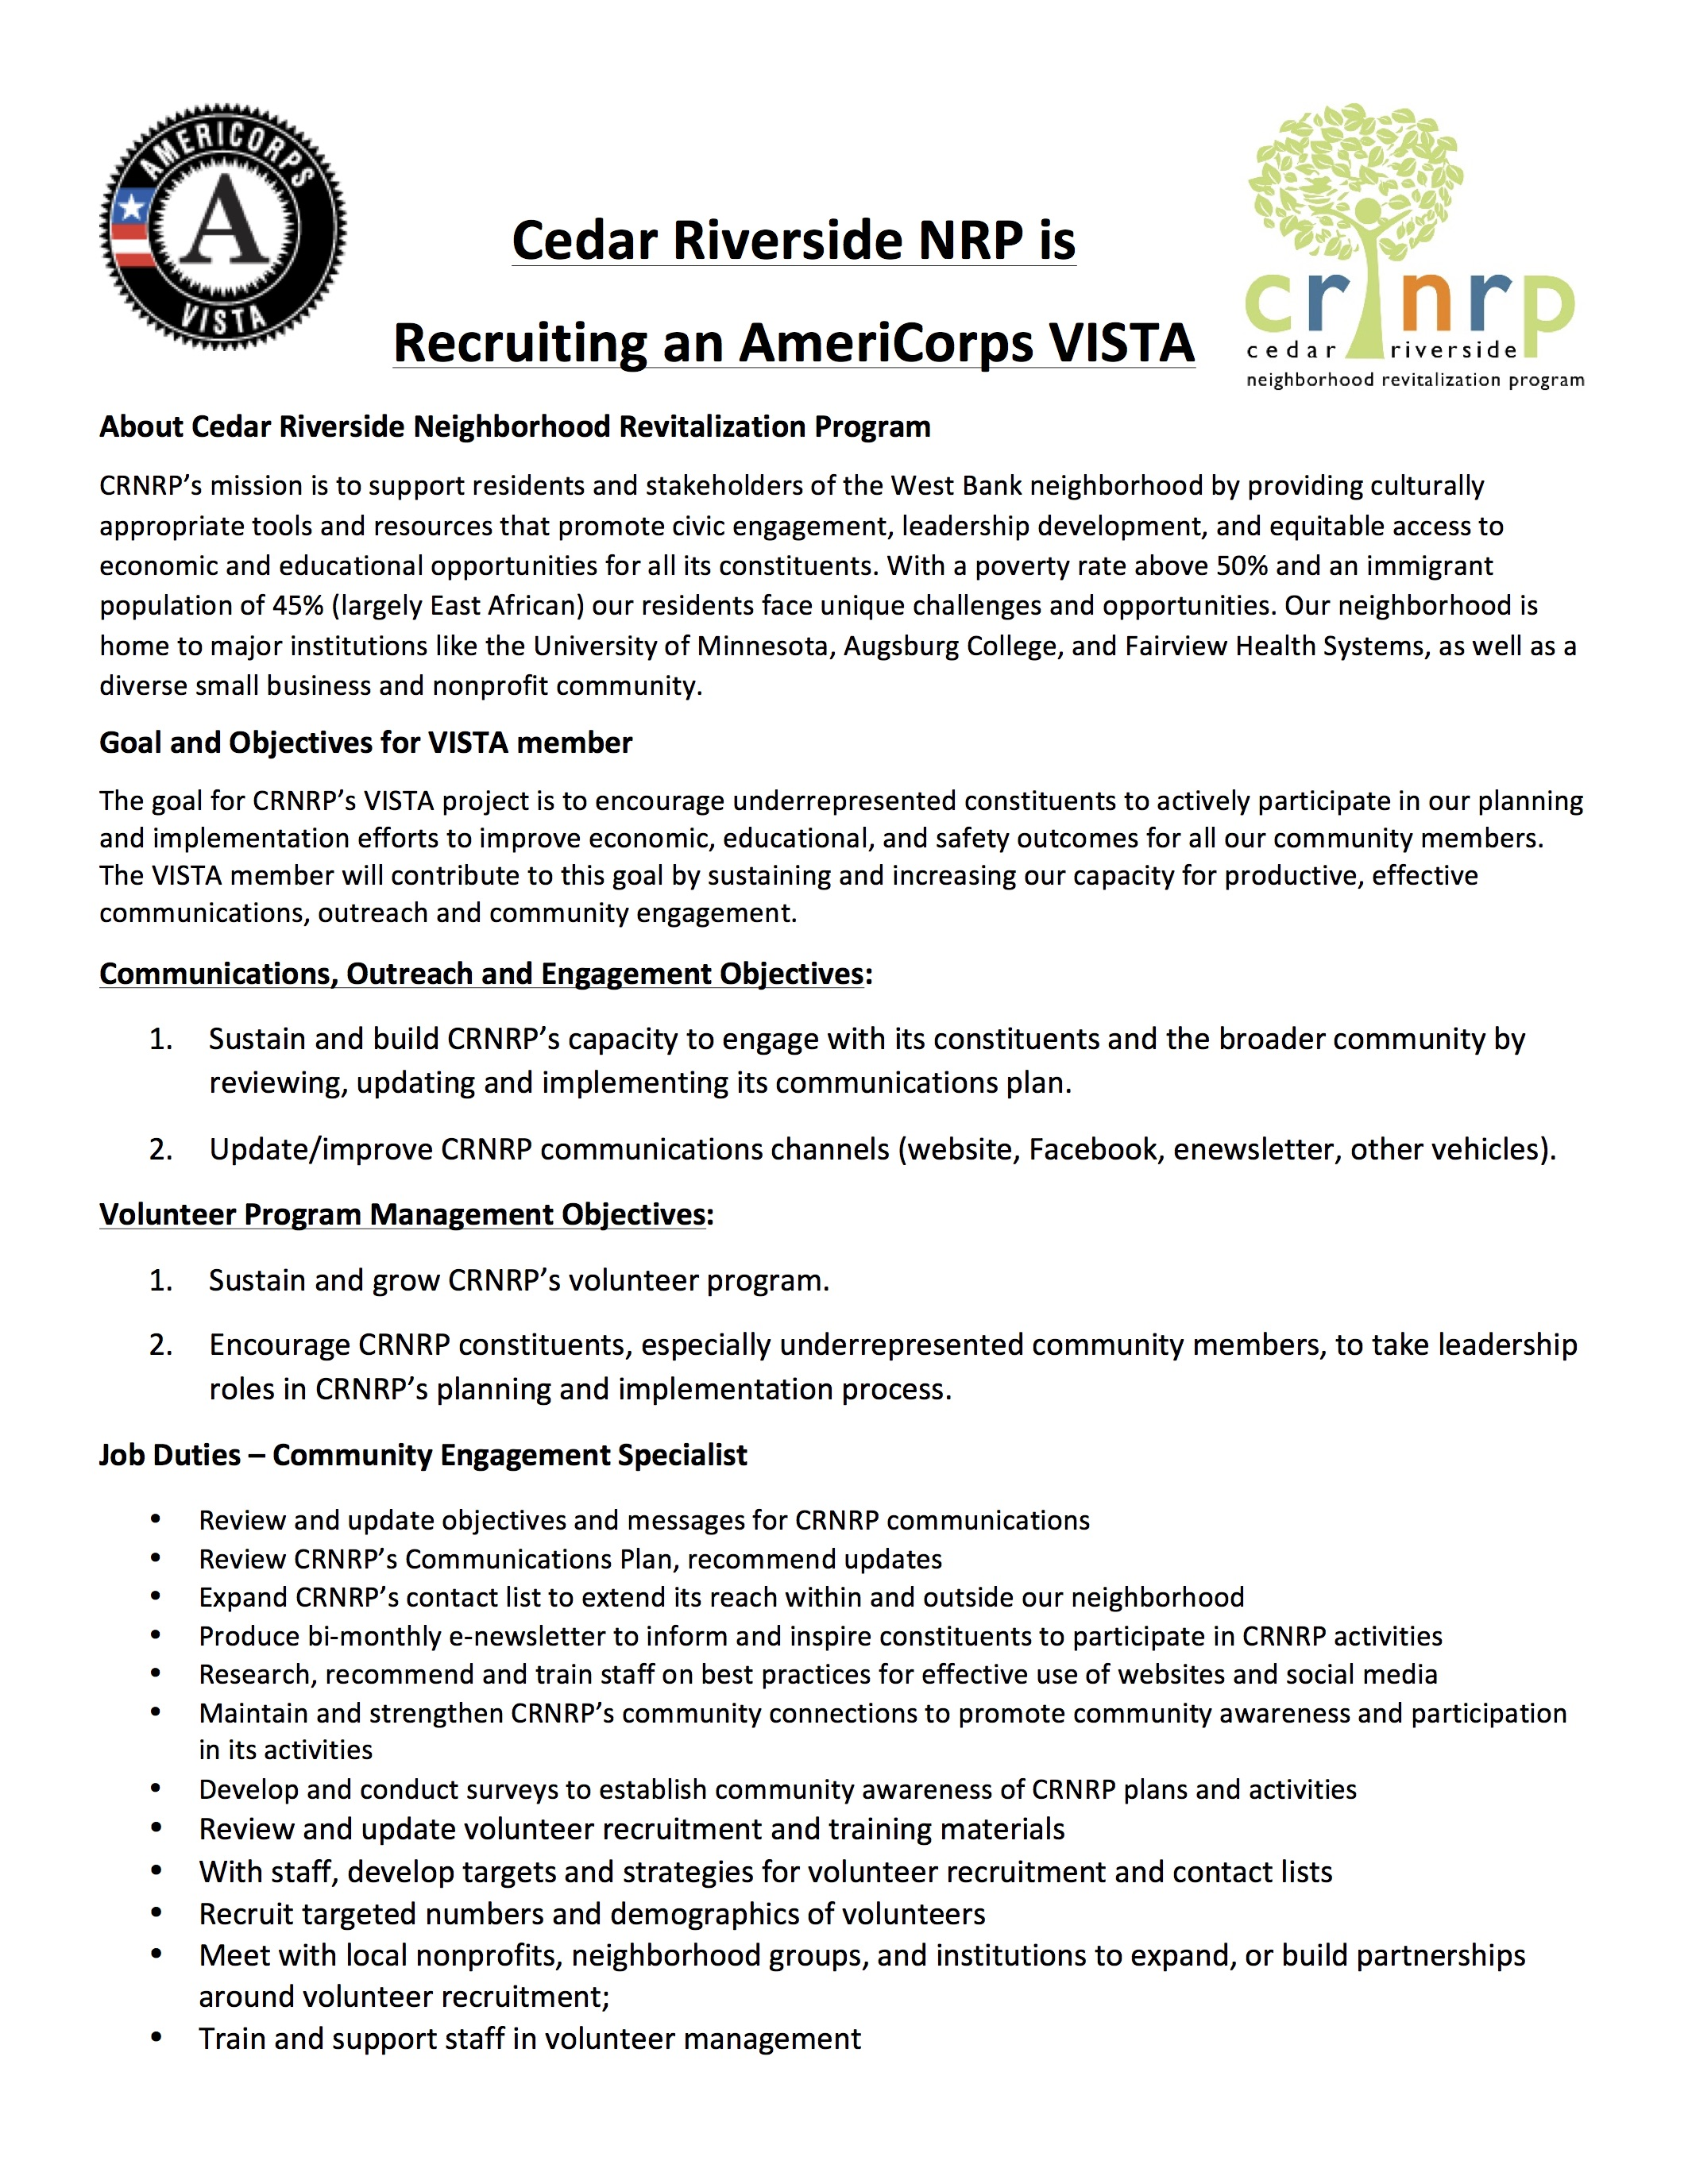 VISTA_Recruitment_Doc_050117.jpg